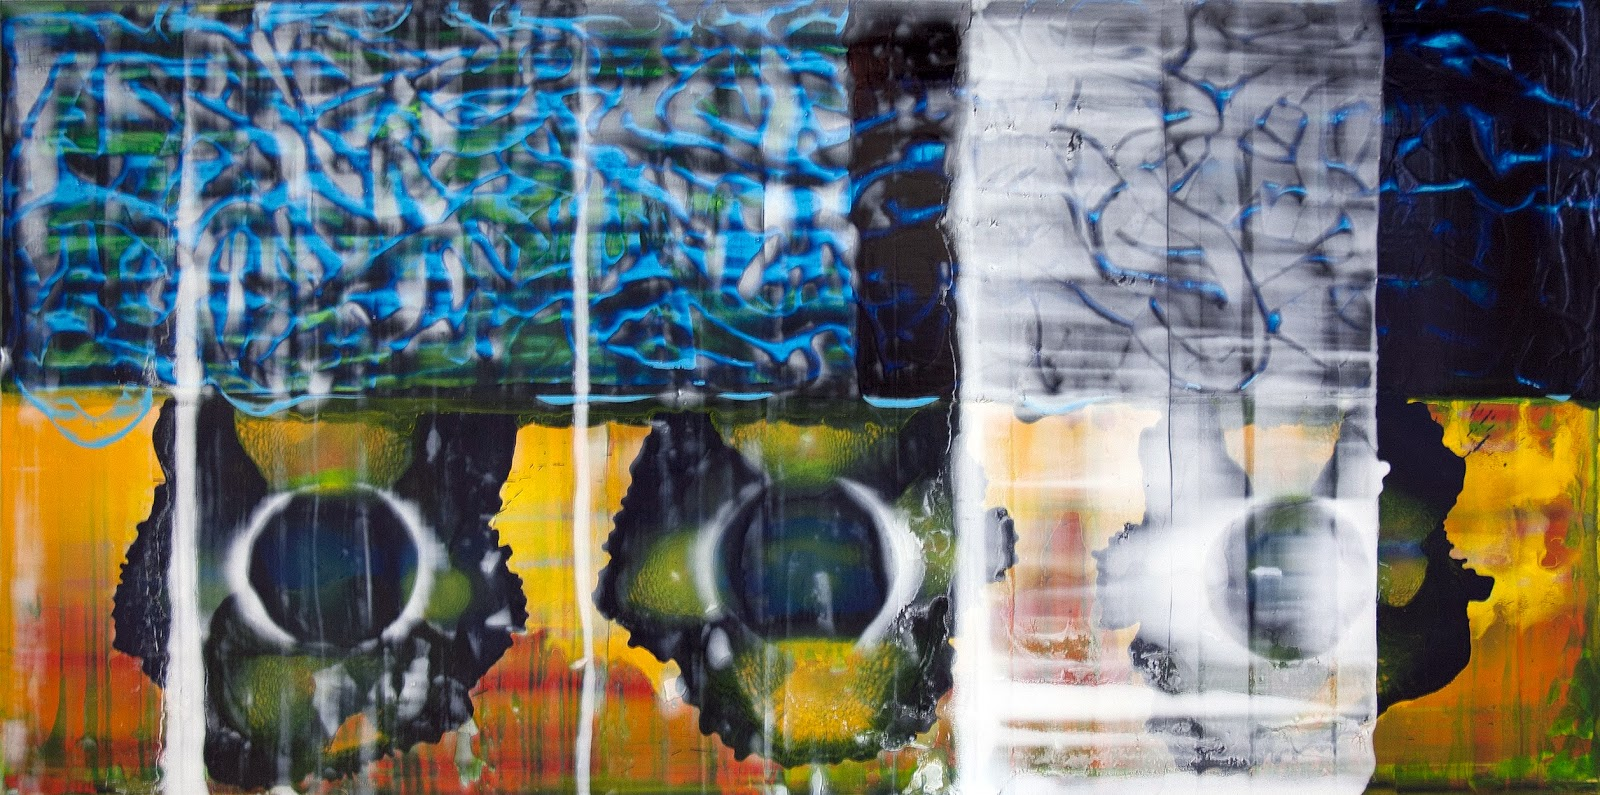 9. John Cronin - Standard Deviation - oil on aluminium 2013, 2x4 .jpg